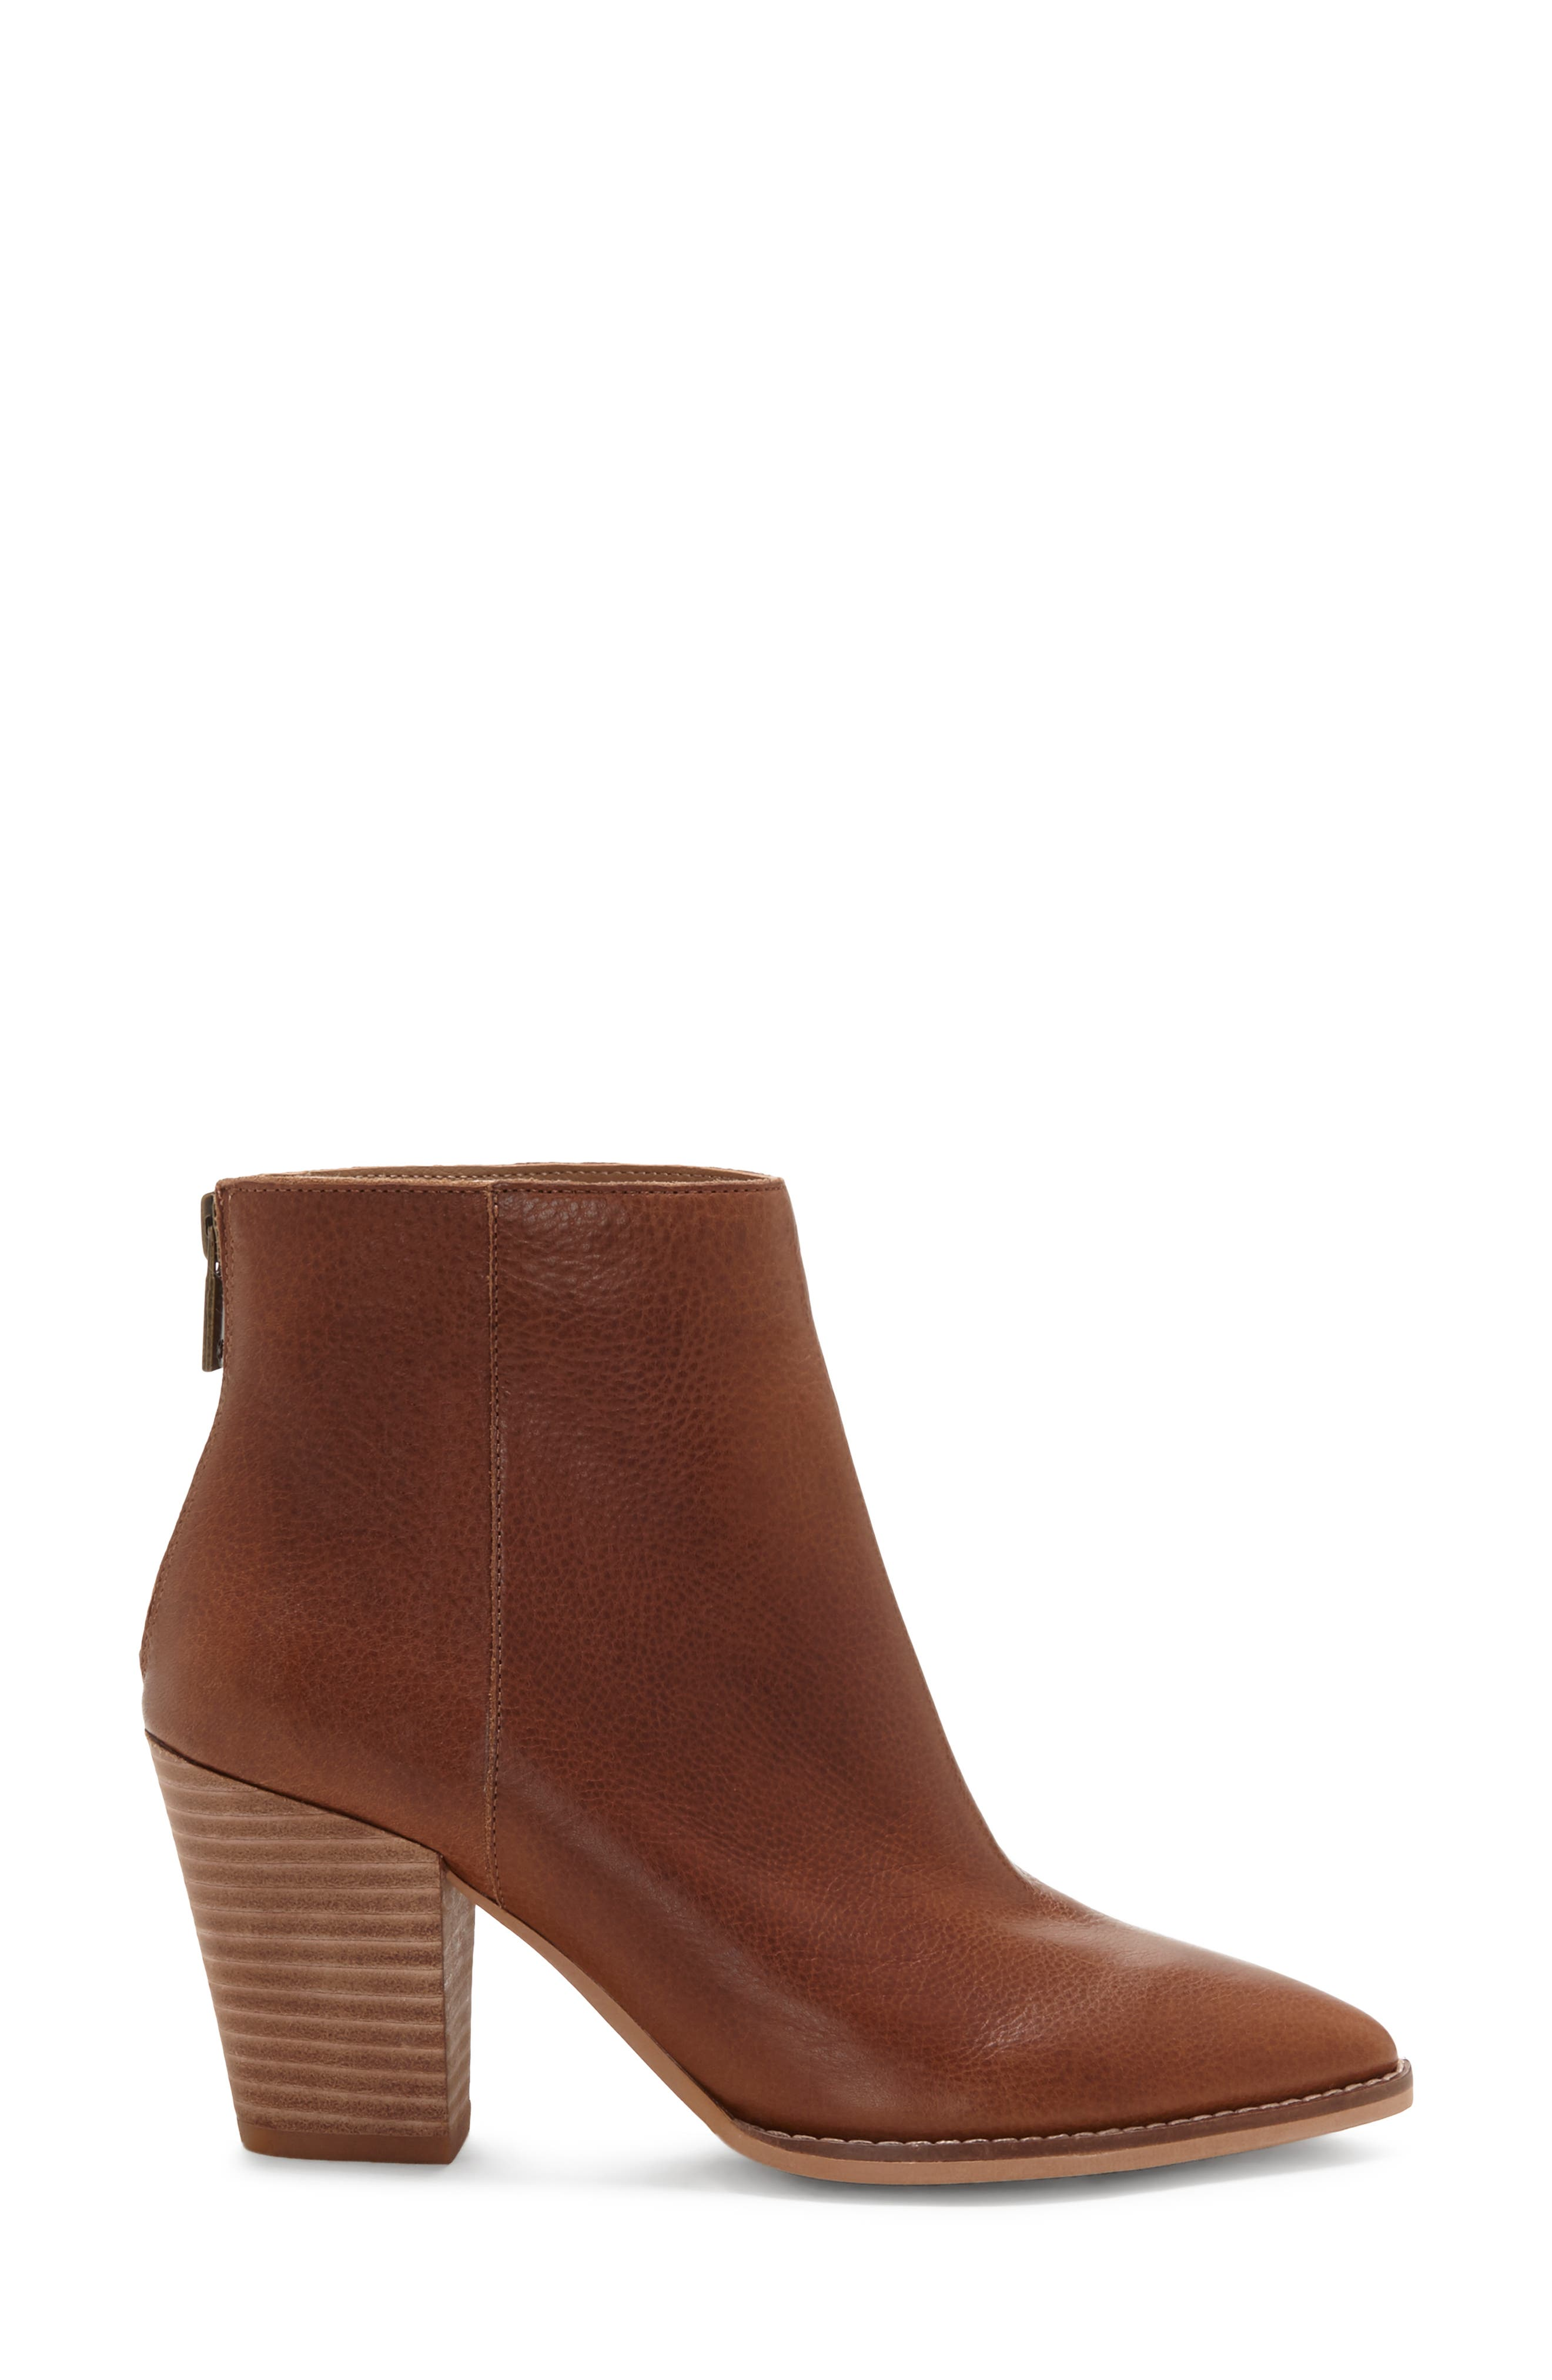 LUCKY BRAND, Adalan Bootie, Alternate thumbnail 3, color, MACAROON LEATHER